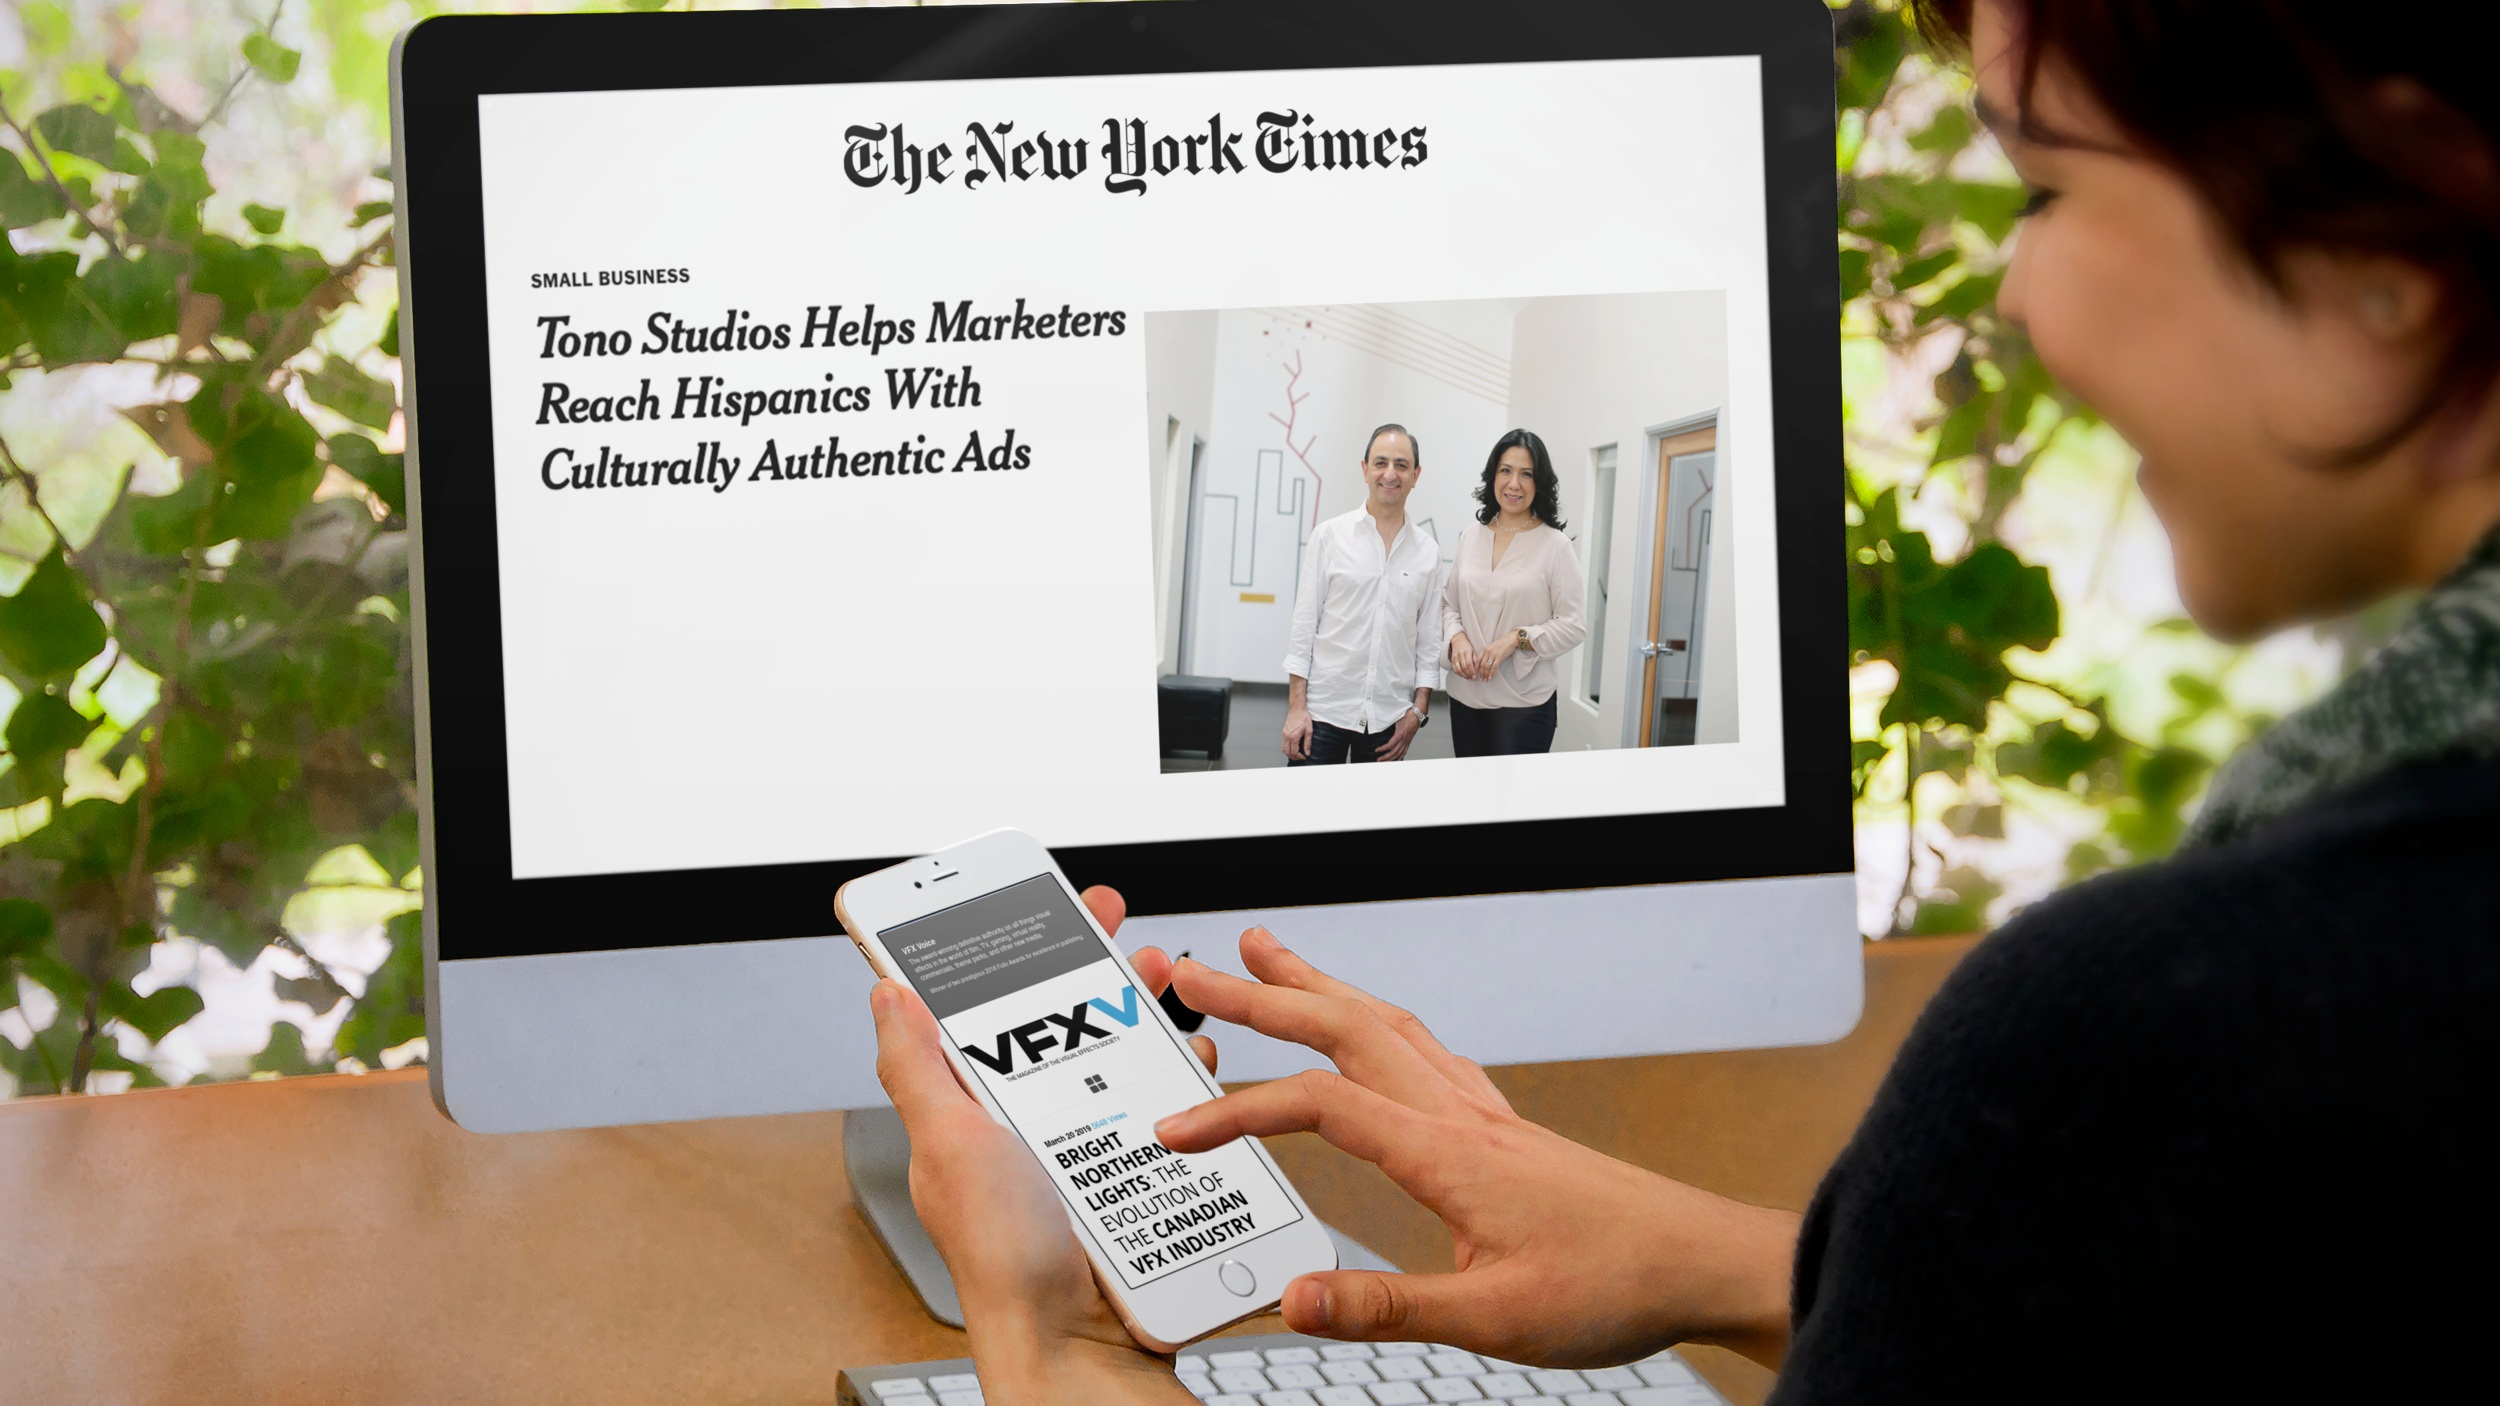 (Clients Artifex Studios in VFXV and Tono Studios in the New York Times)